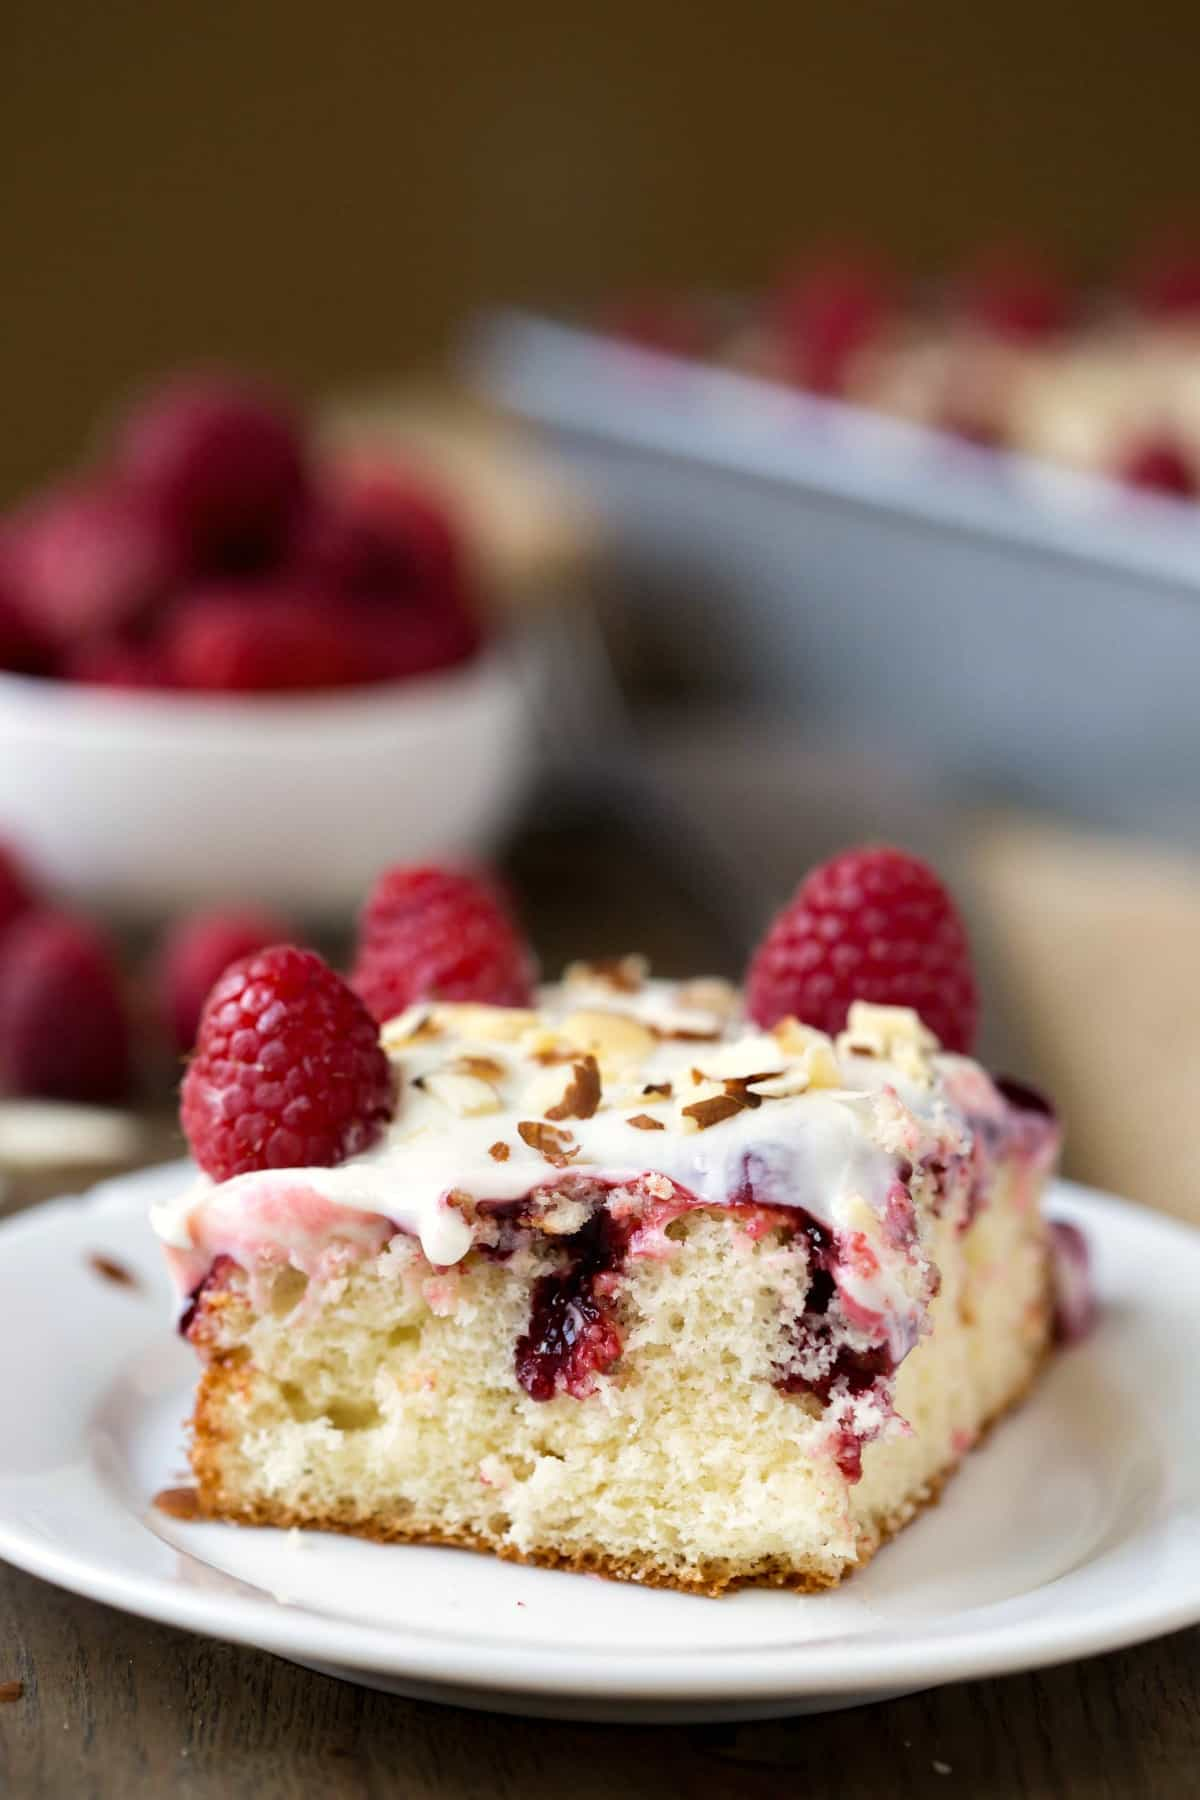 Slice of White Raspberry Poke Cake on a white plate next to a bowl of raspberries